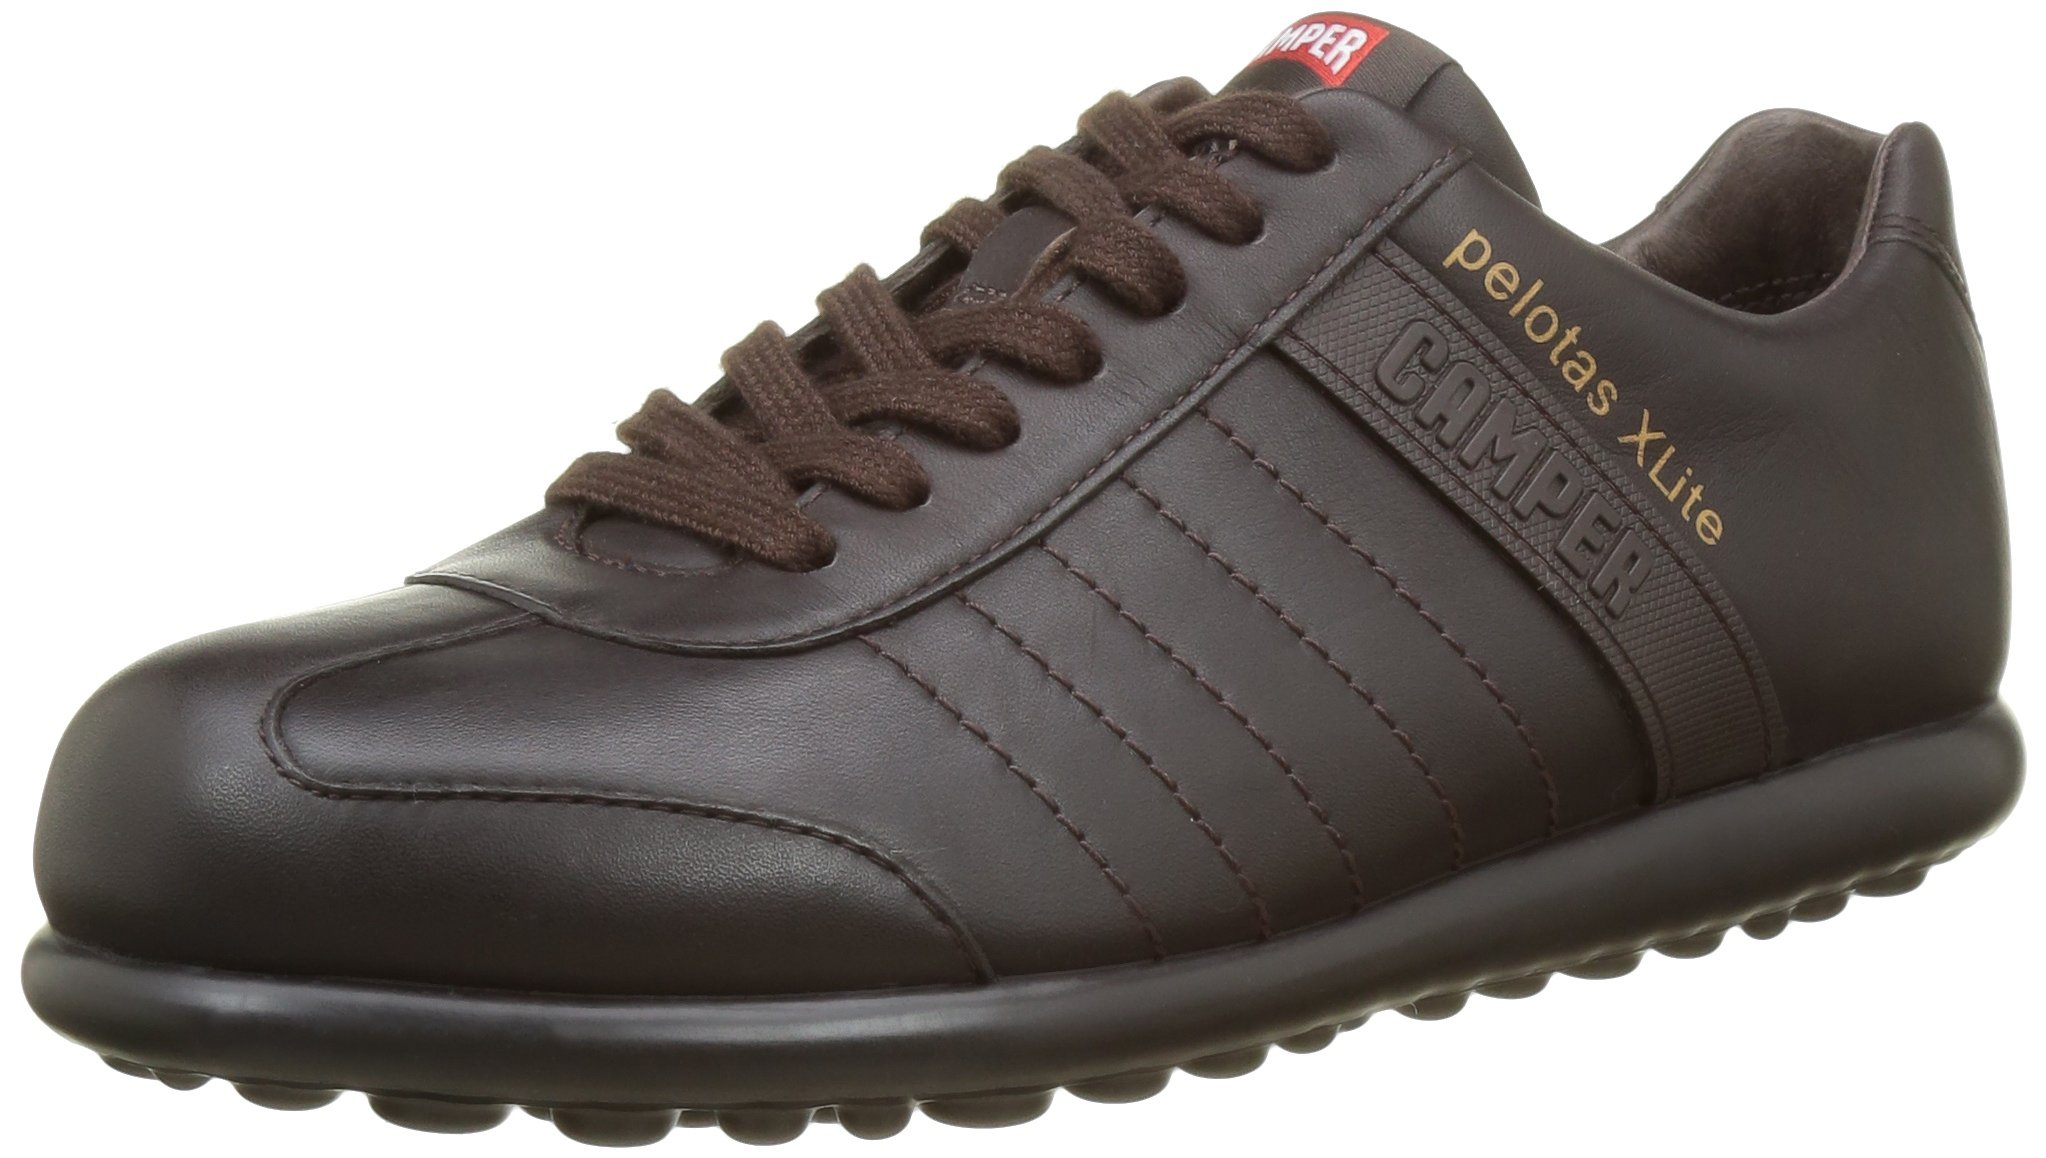 Order XlBaskets First Pelotas Camper Eu Brown Adults HommeMarrondark Mode 02543 rxodCBe